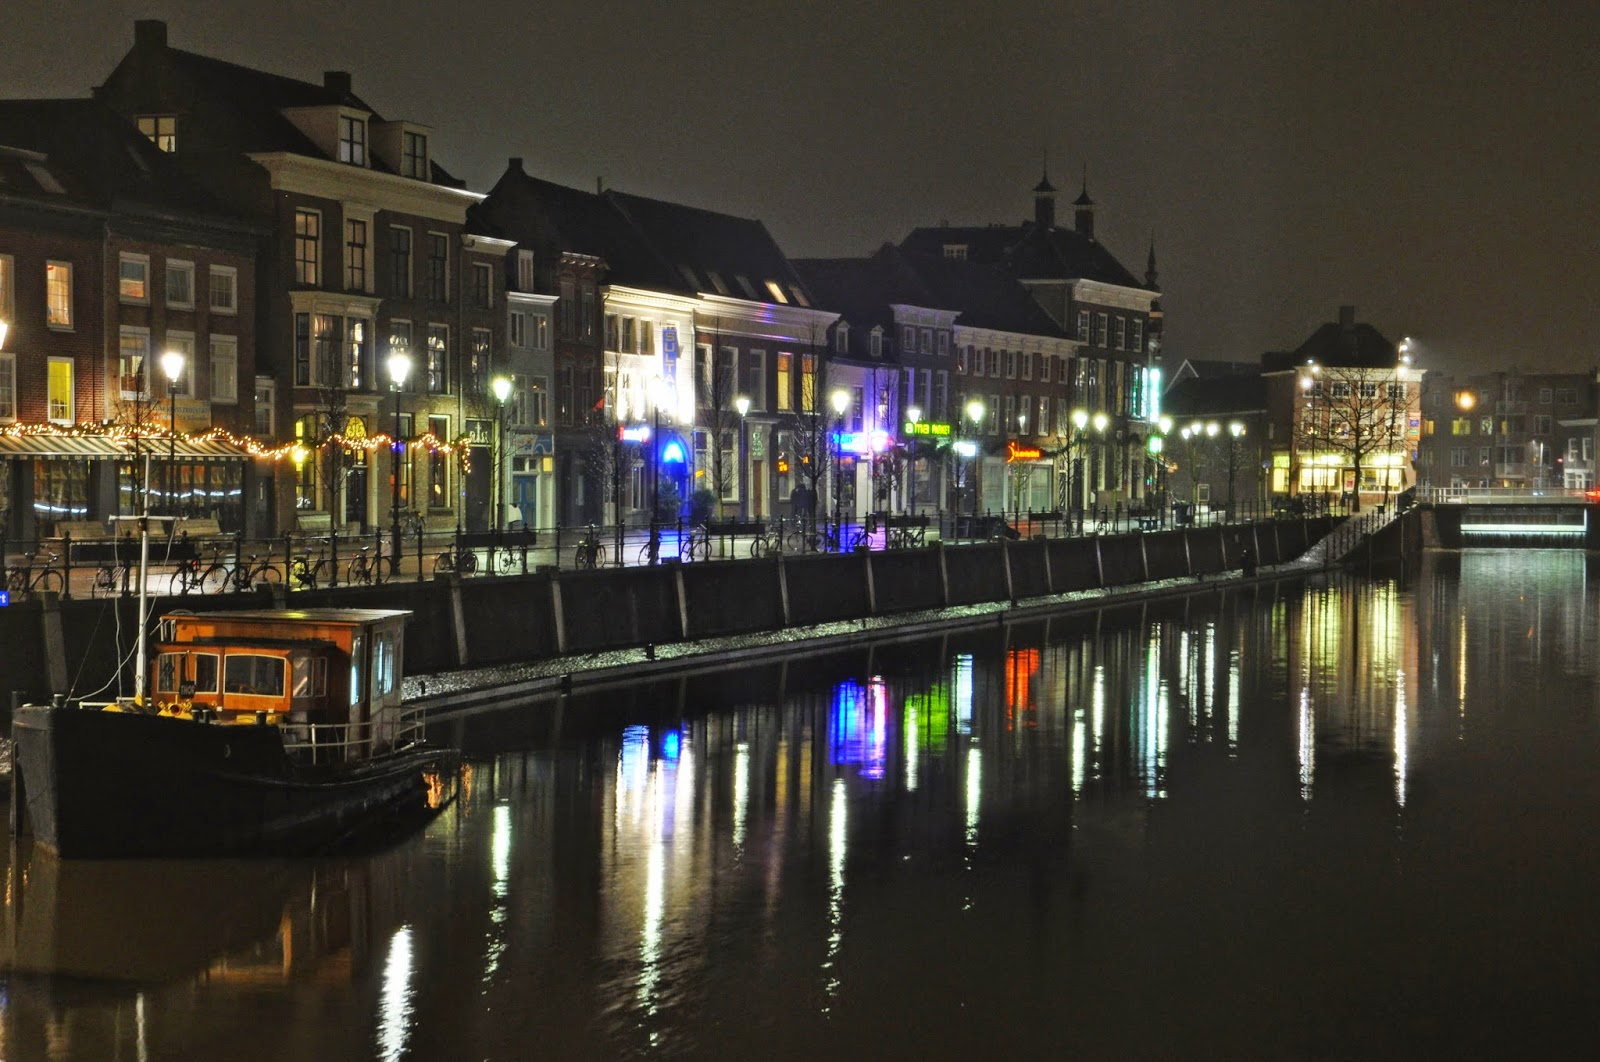 Breda by night - fotocursus en opleidingen Artstudio23